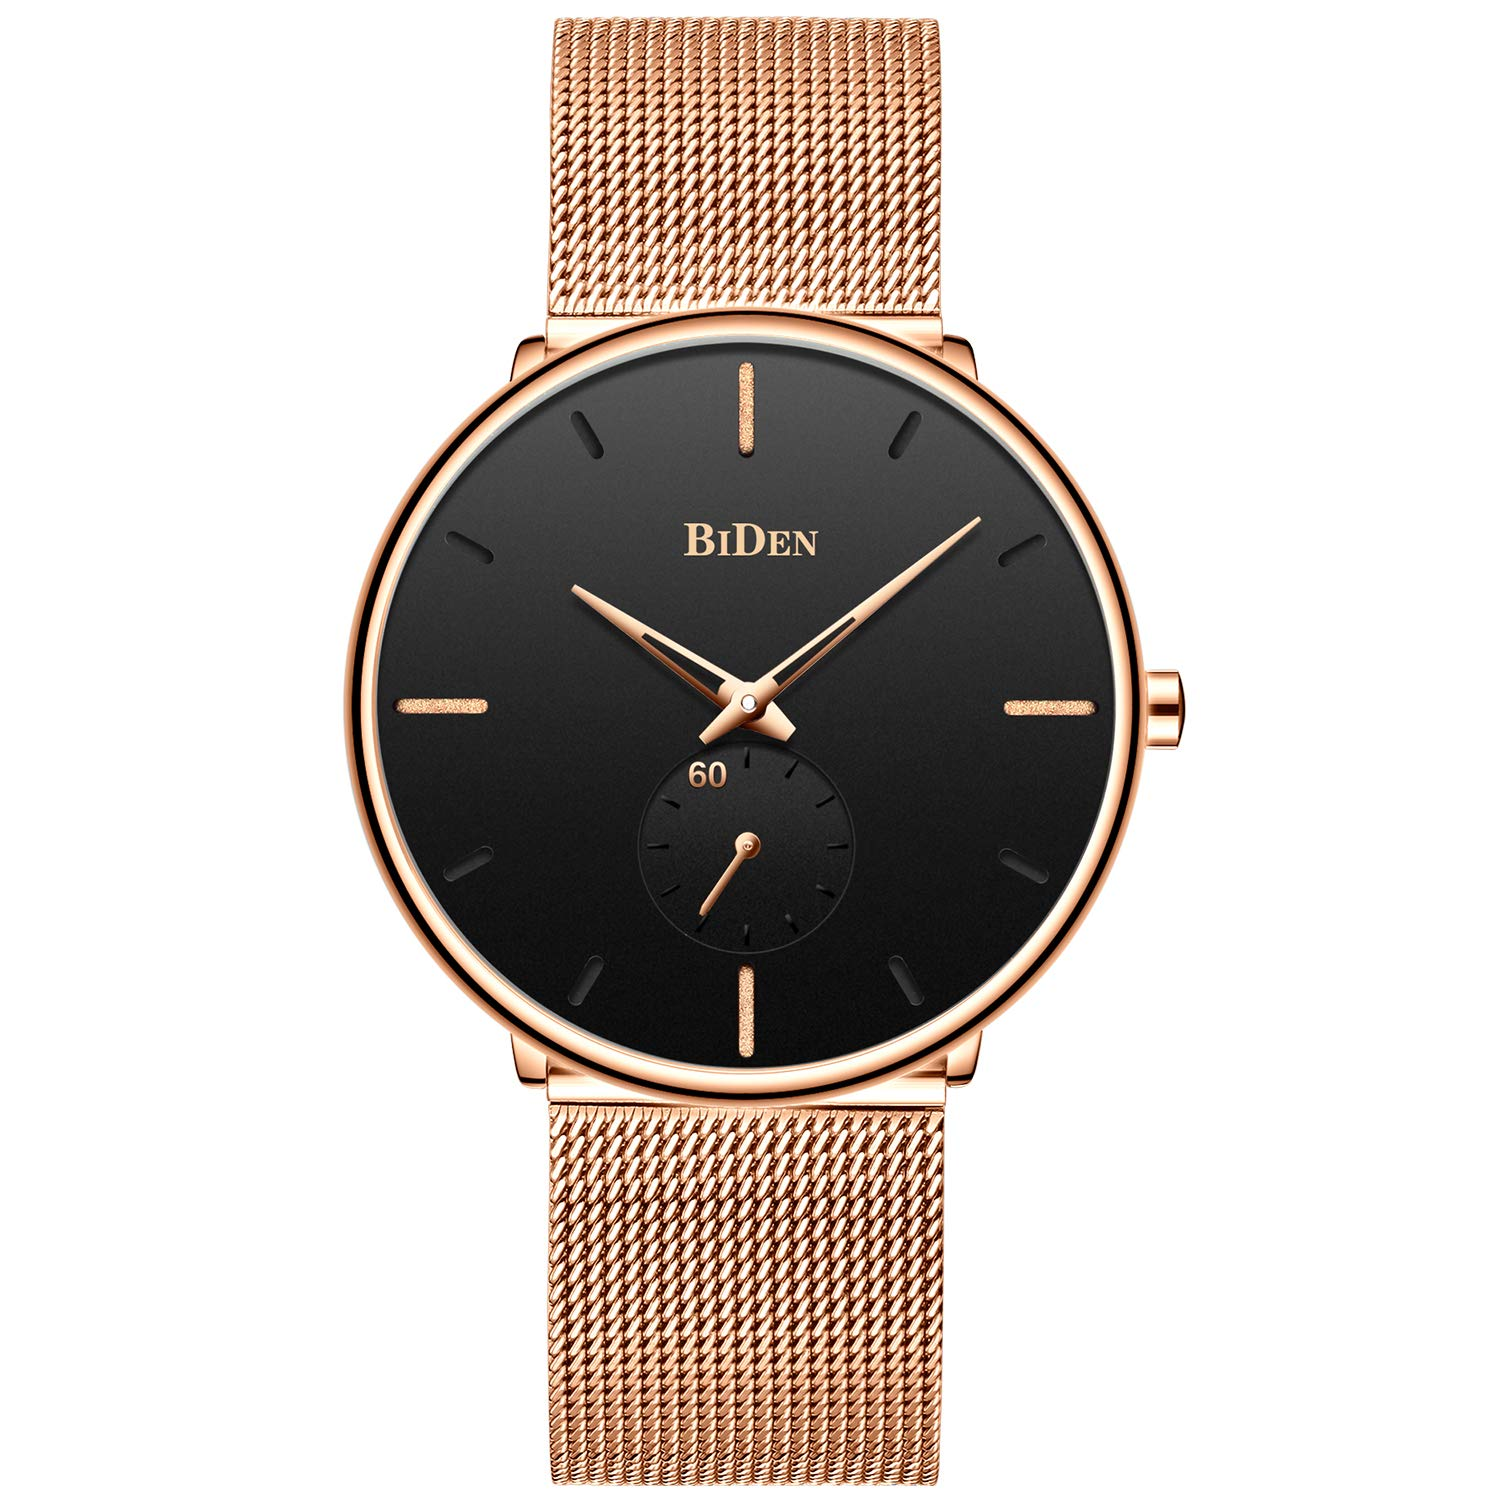 Mens Black Watches Men Stainless Steel Waterproof Mesh Watch Simple Designer Analogue Quartz Stylish Watch Men s Luxury Business Classic Dress Gents Watches for Men